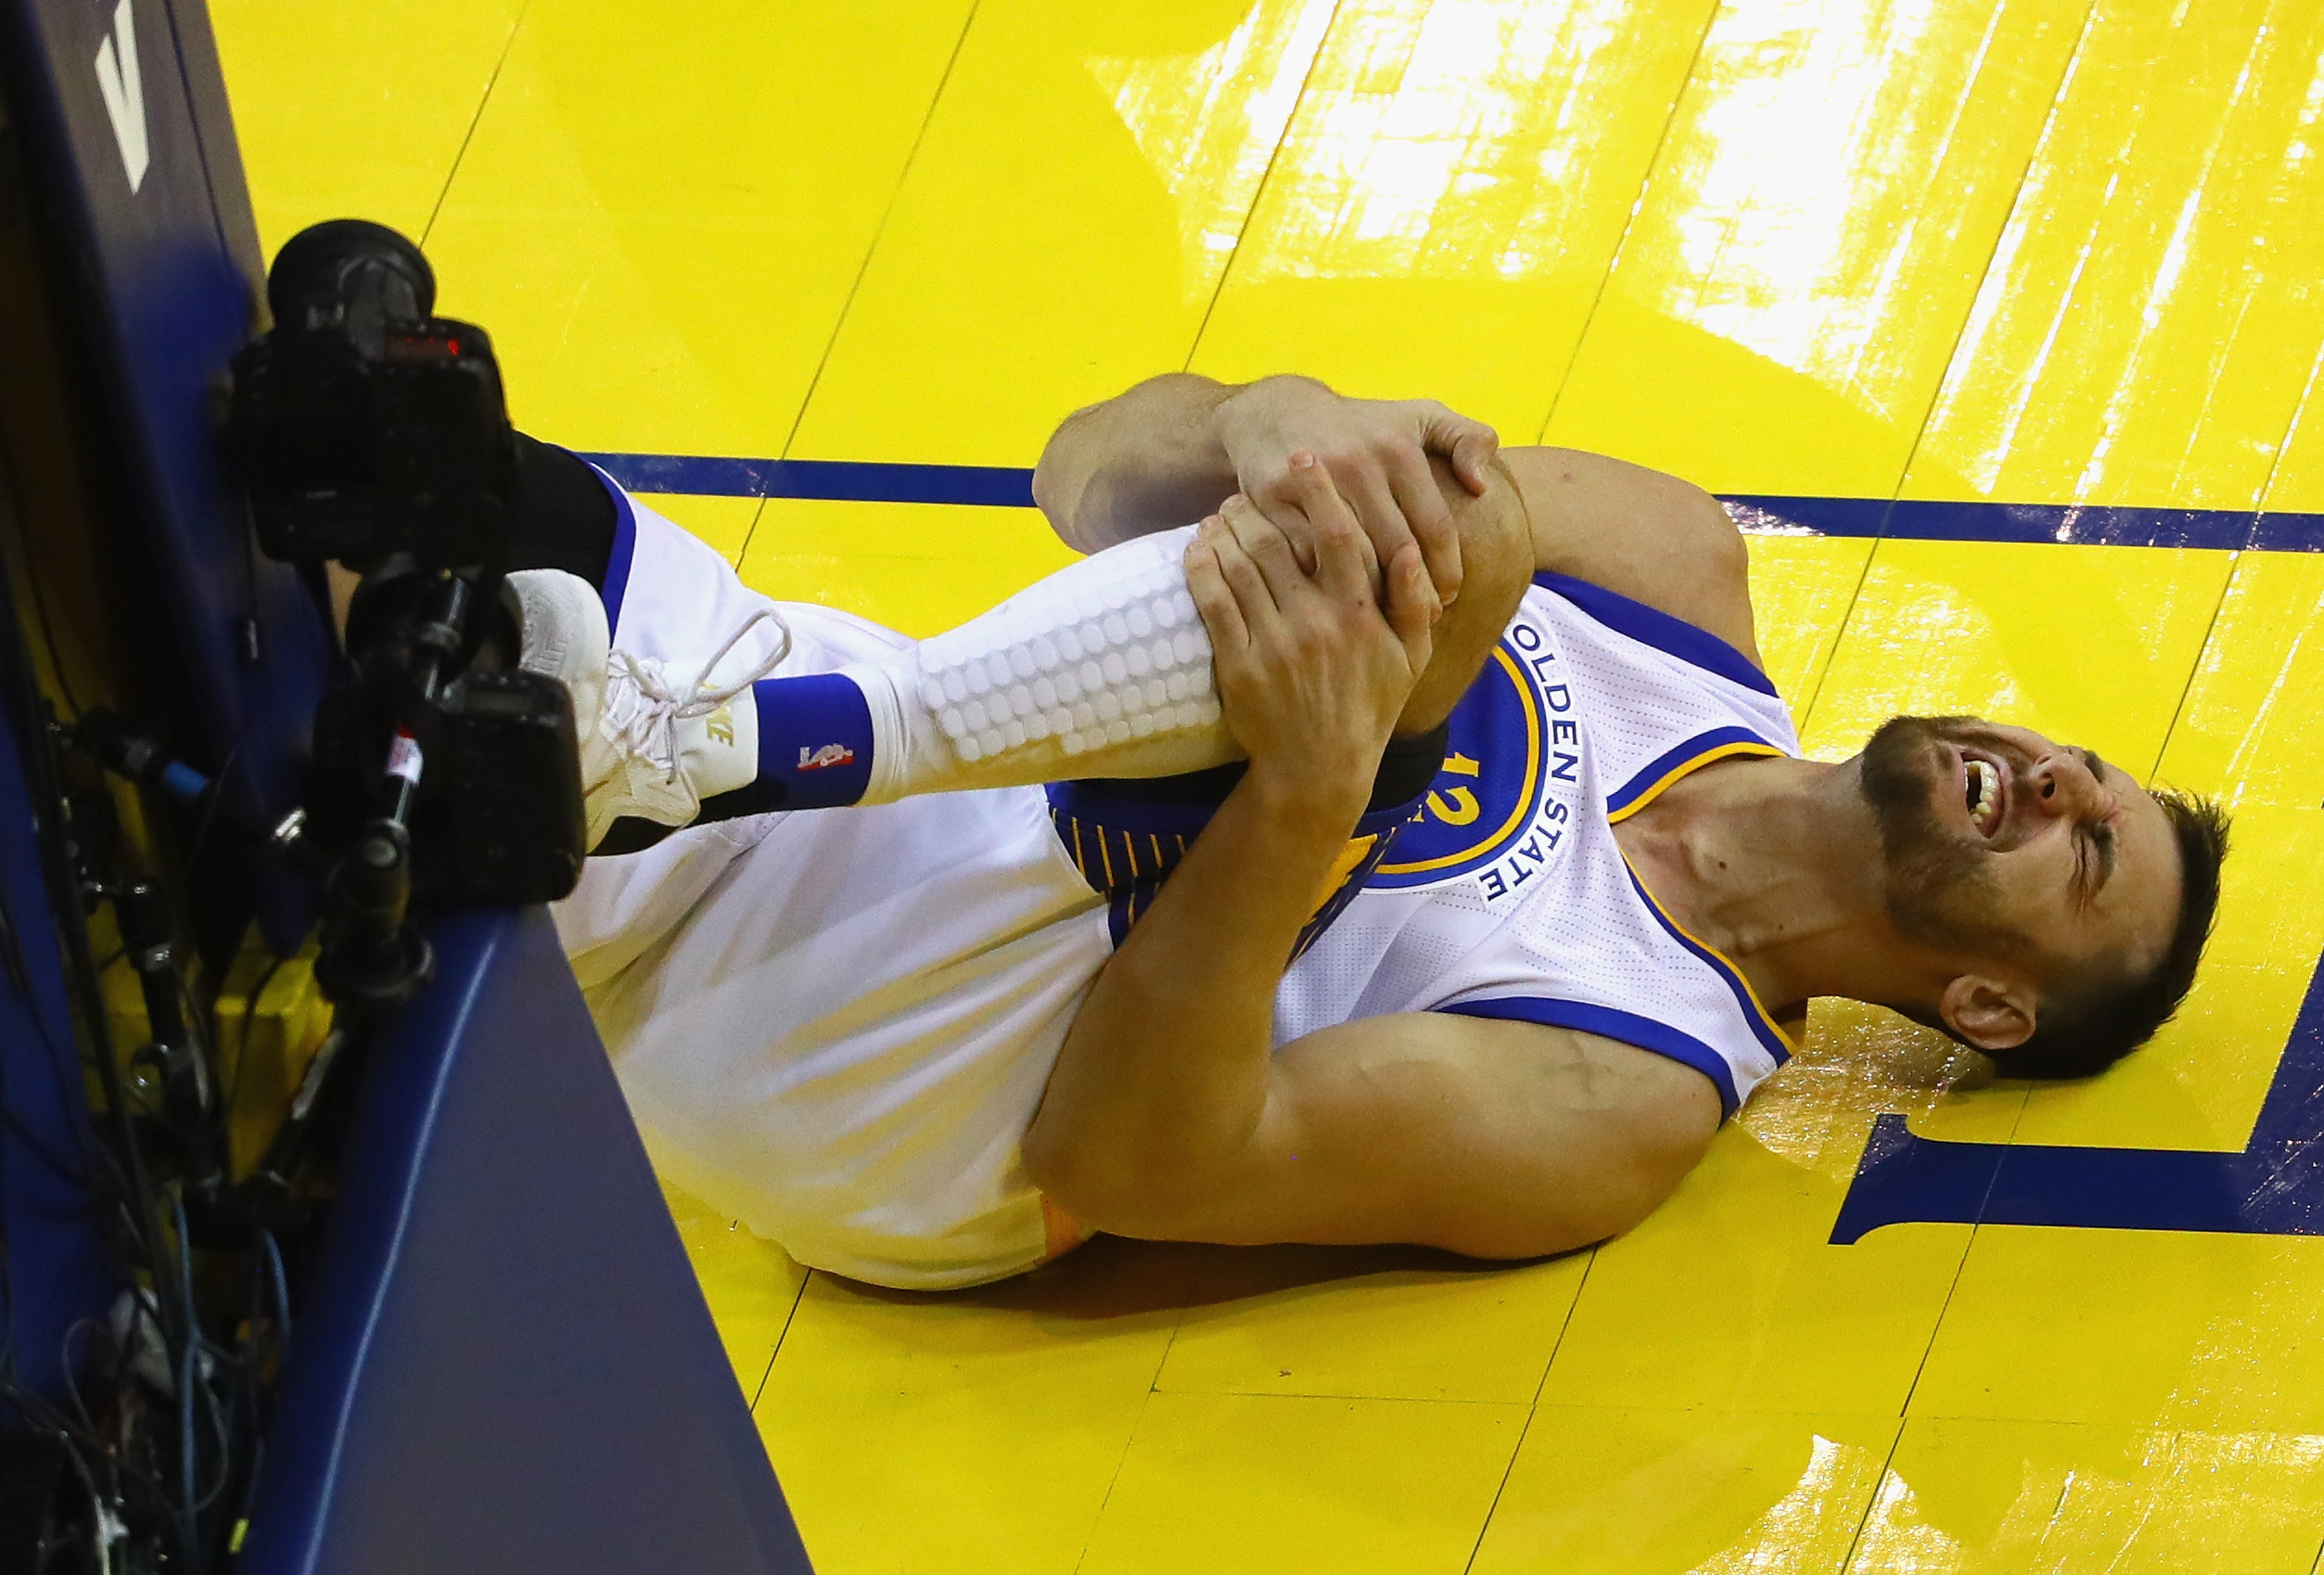 OAKLAND, CA - JUNE 13:  Andrew Bogut #12 of the Golden State Warriors reacts after suffering an apparent injury during the second half against the Cleveland Cavaliers in Game 5 of the 2016 NBA Finals at ORACLE Arena on June 13, 2016 in Oakland, California